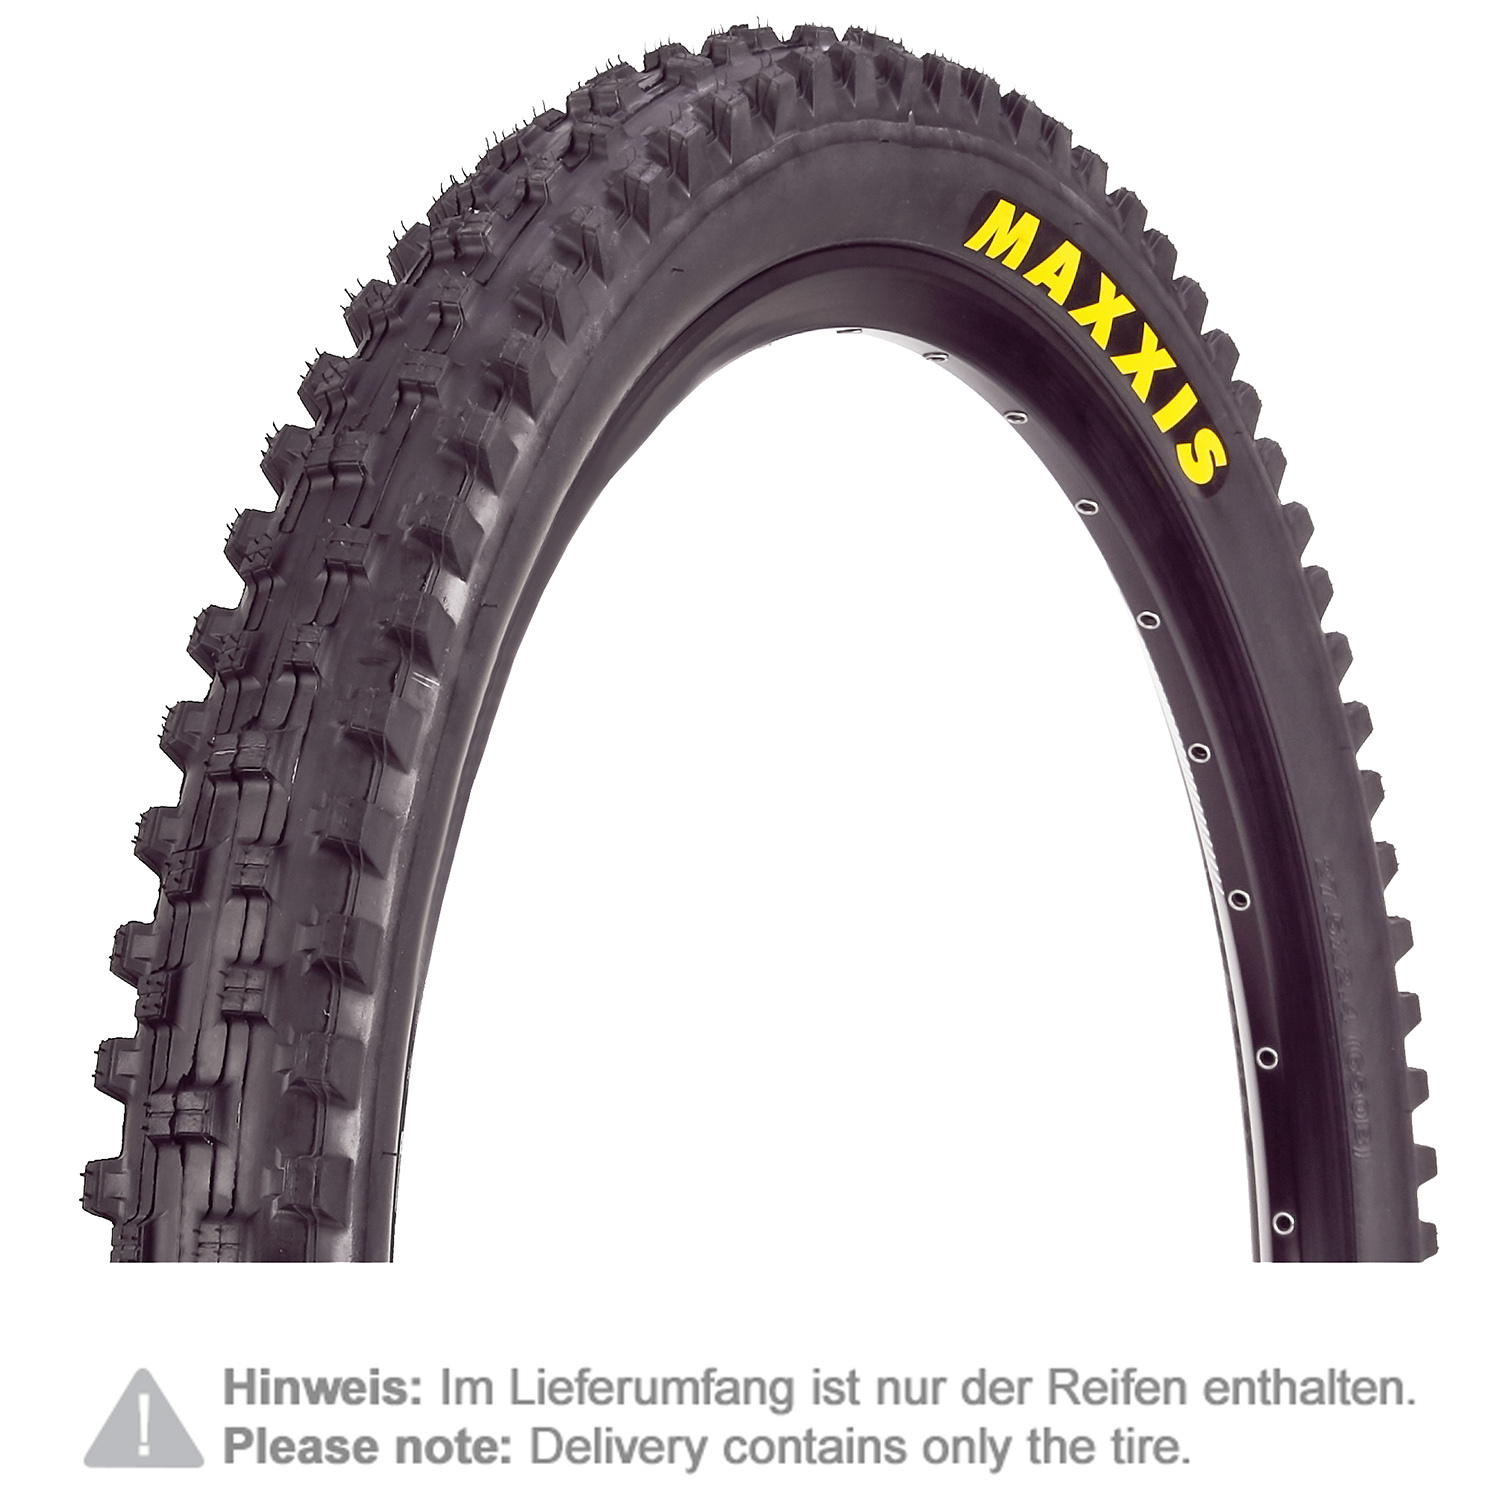 maxxis mtb reifen shorty schwarz 27 5 x zoll. Black Bedroom Furniture Sets. Home Design Ideas